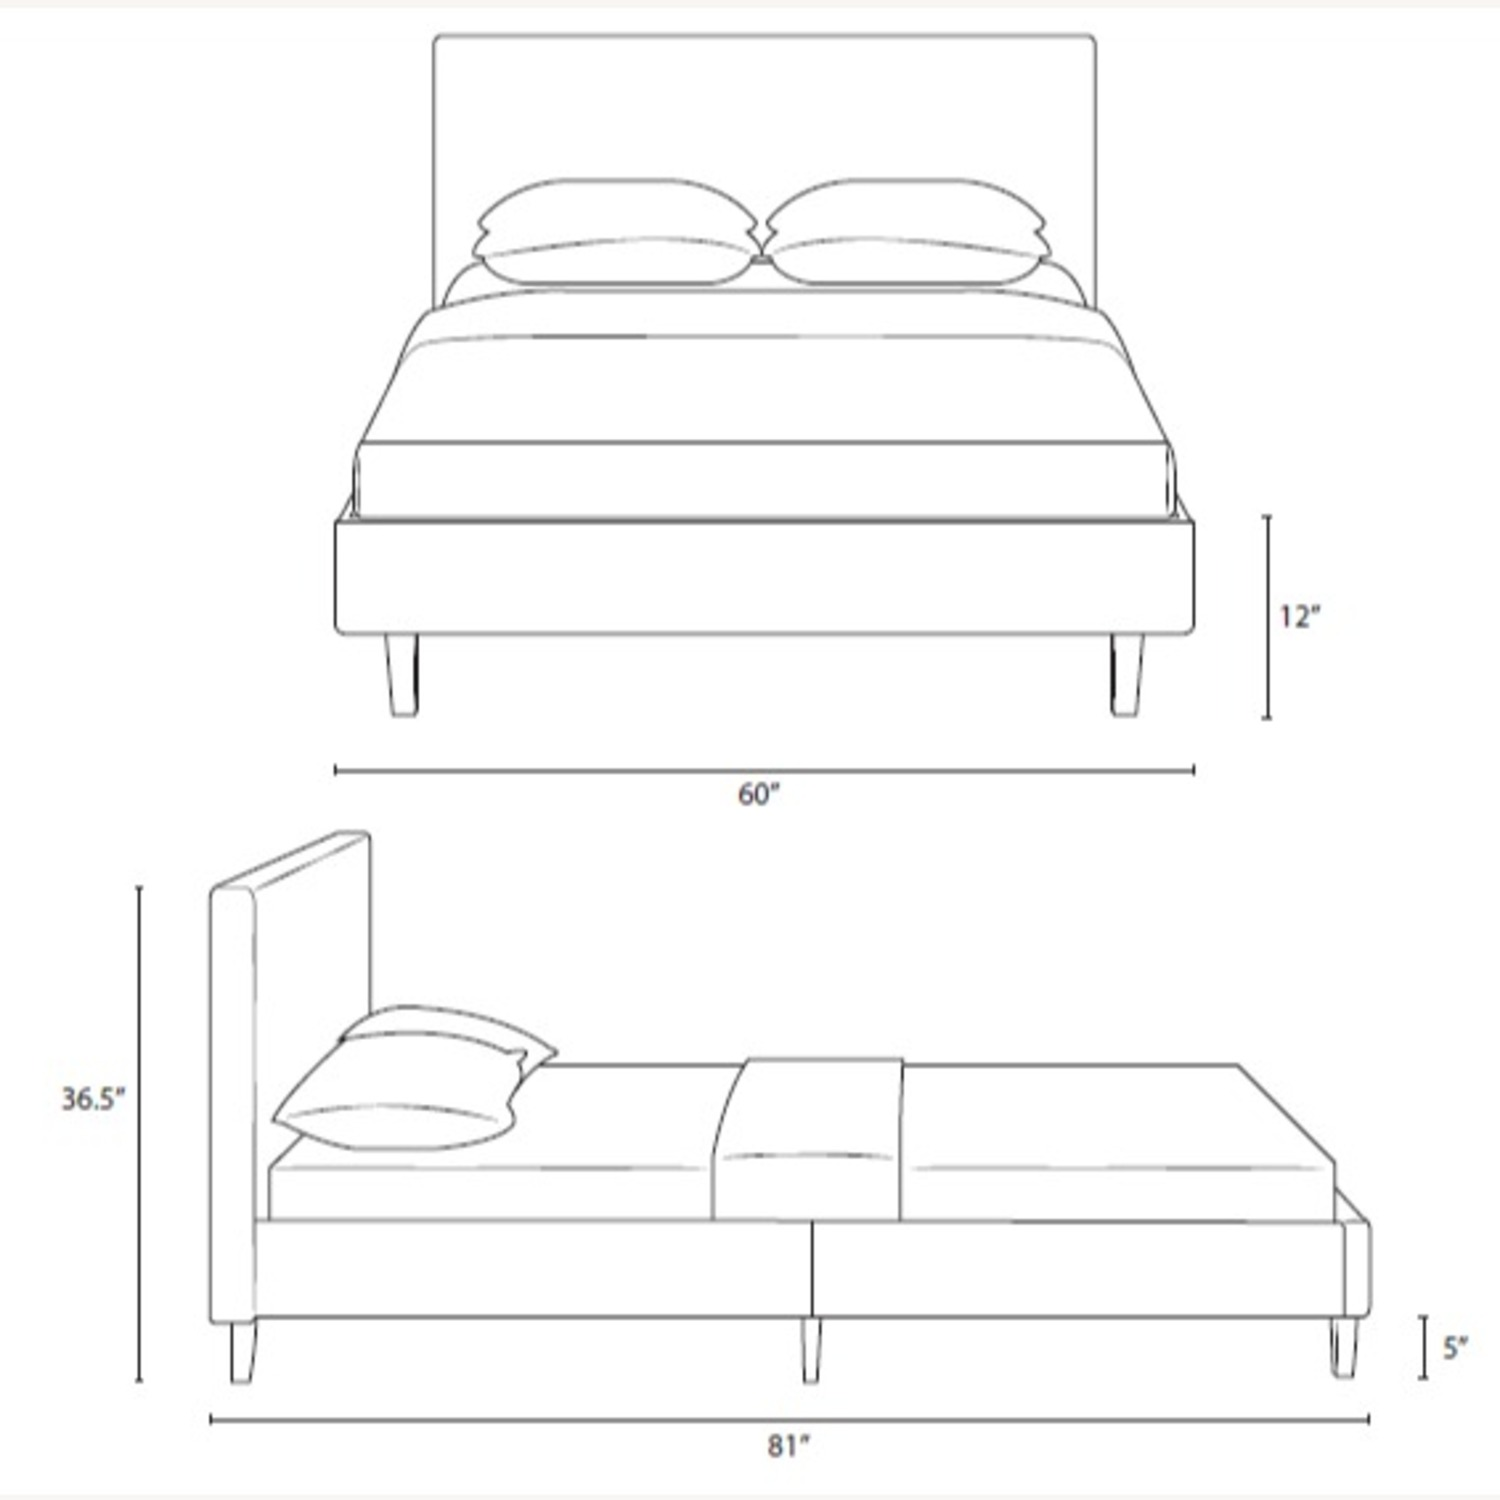 Full Bed In White Fabric Base & Tufted Headboard - image-5